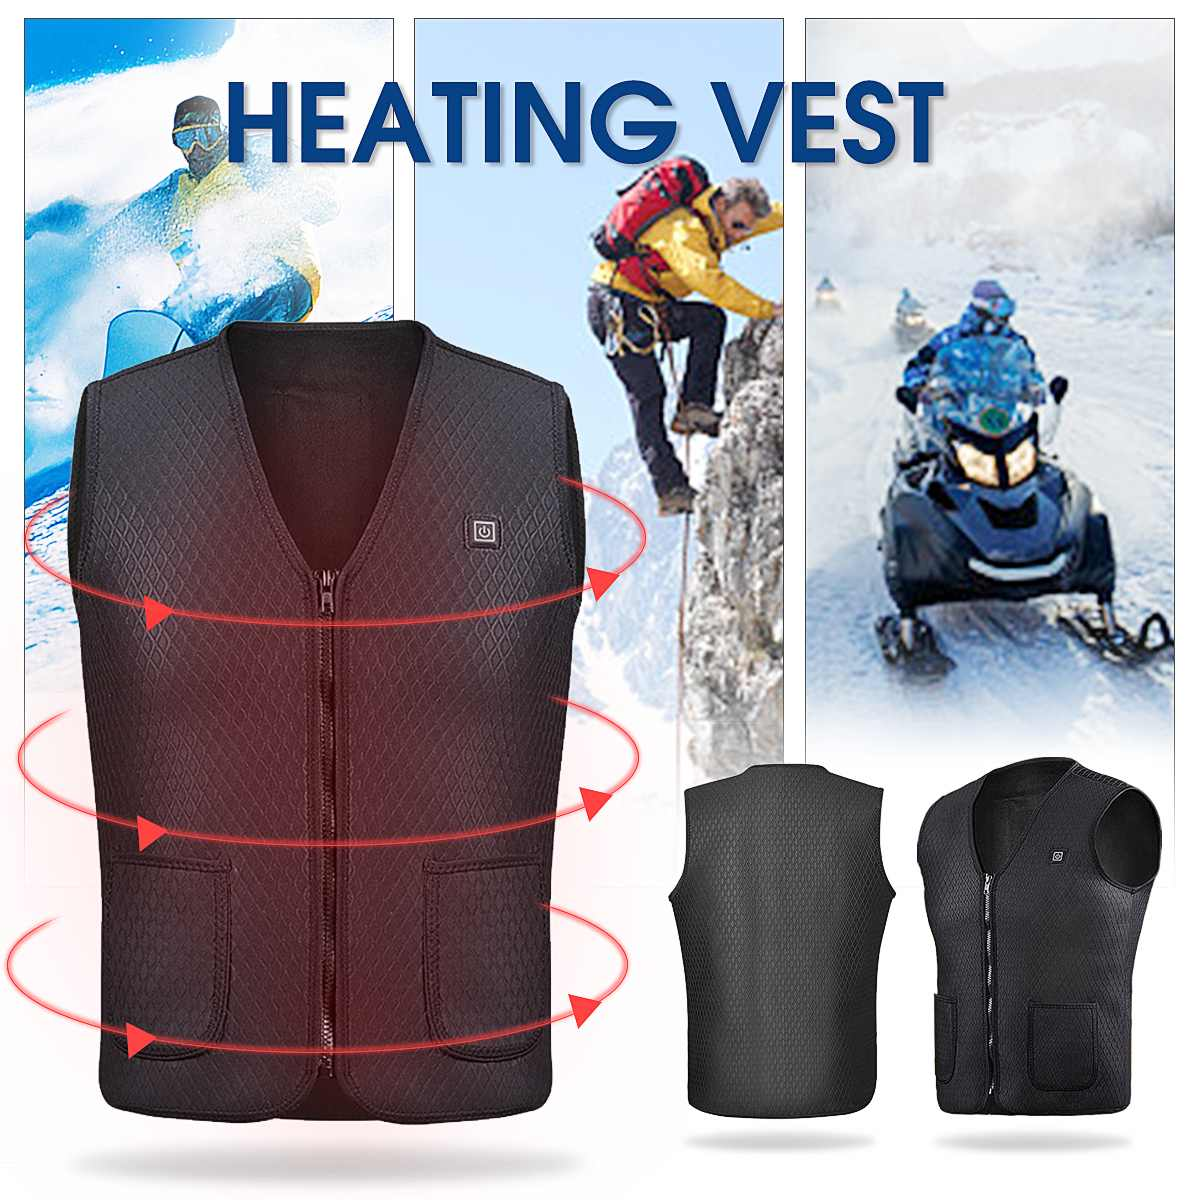 Washable Electric Heated Vest Adjustable USB Charging Heating Jecket Coats Cloth Heating Clothing Winter Warm Black/Green large size autumn and winter men s stand collar heating cotton vest graphene electric vest adjustable usb charging heated cloth